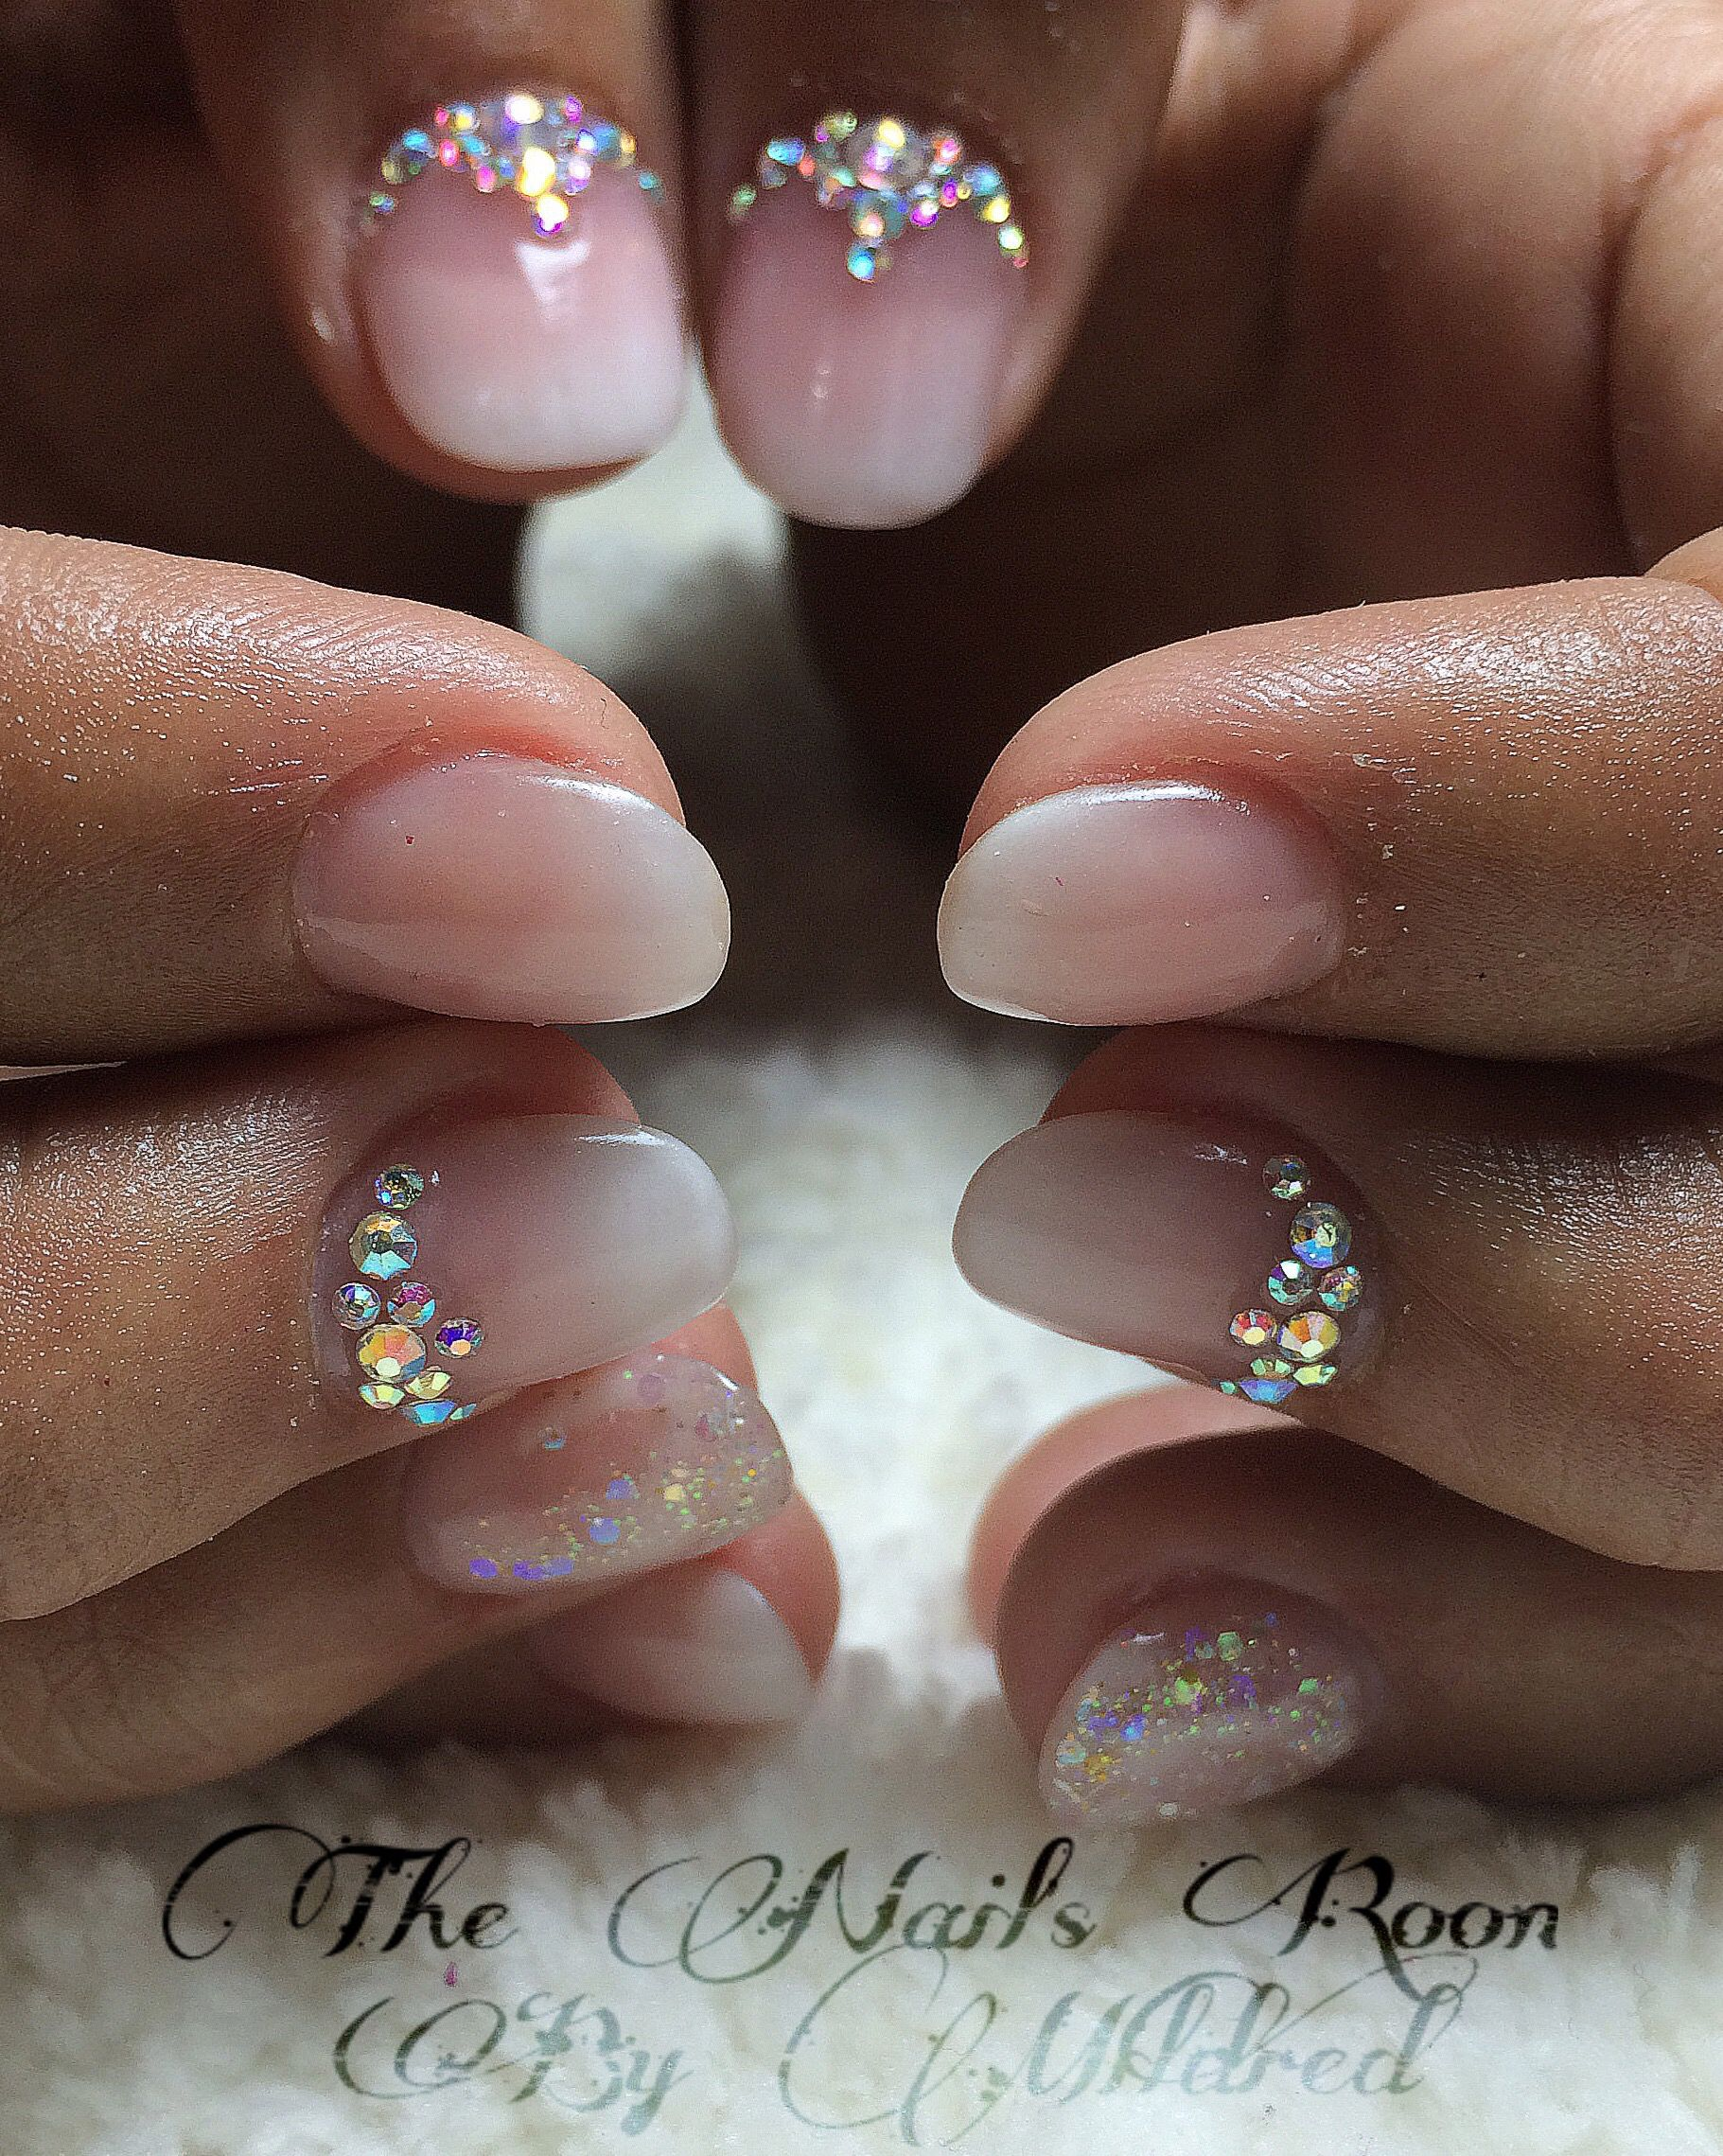 Pin by Mildred Gonzalez on The Nail\'s Room | Pinterest | Short nails ...